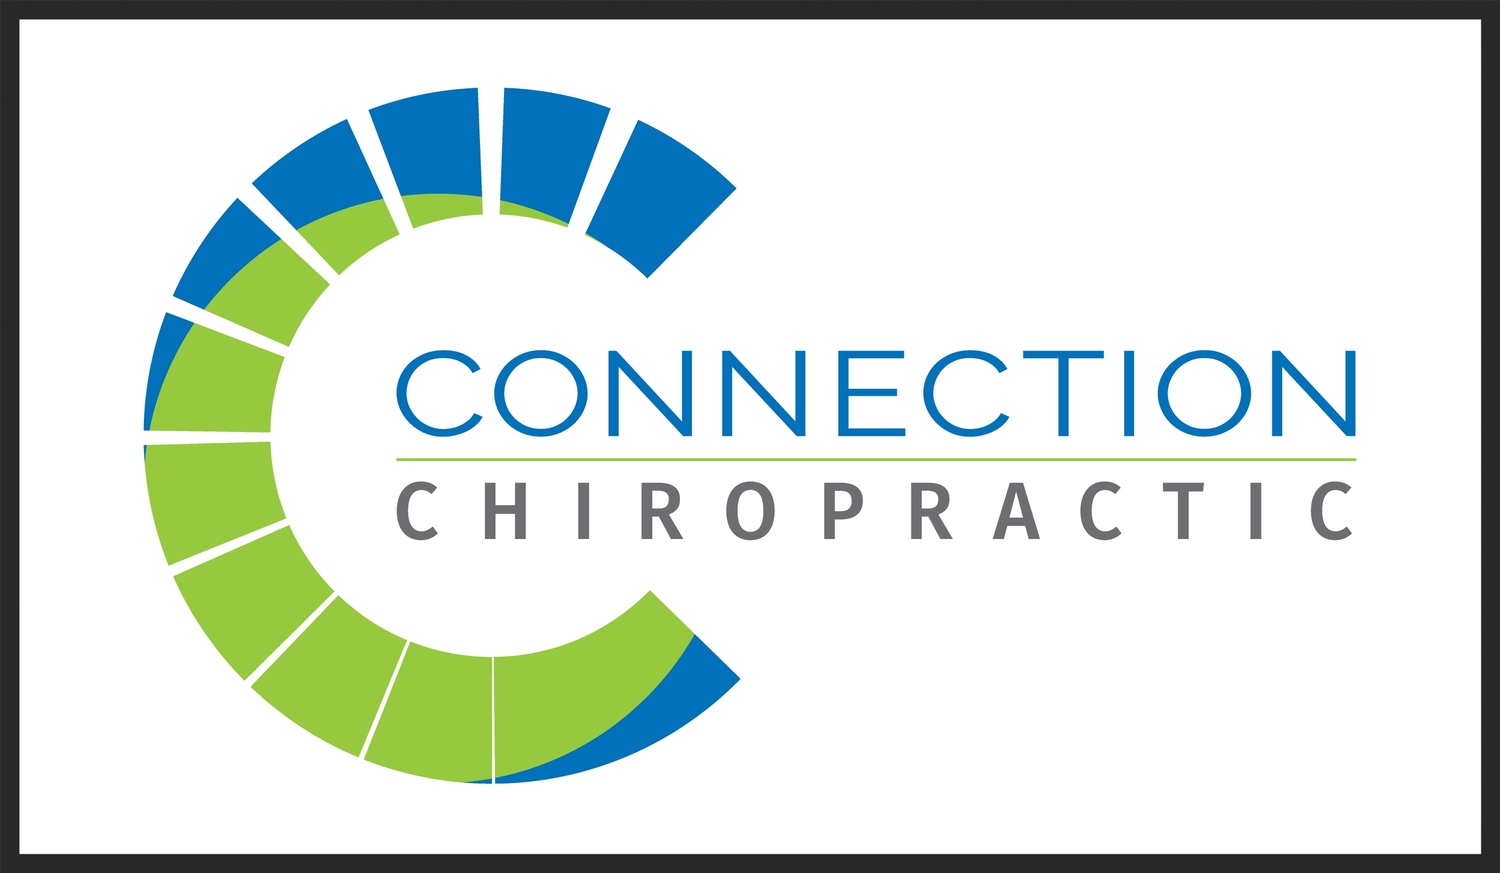 Connection Chiropractic